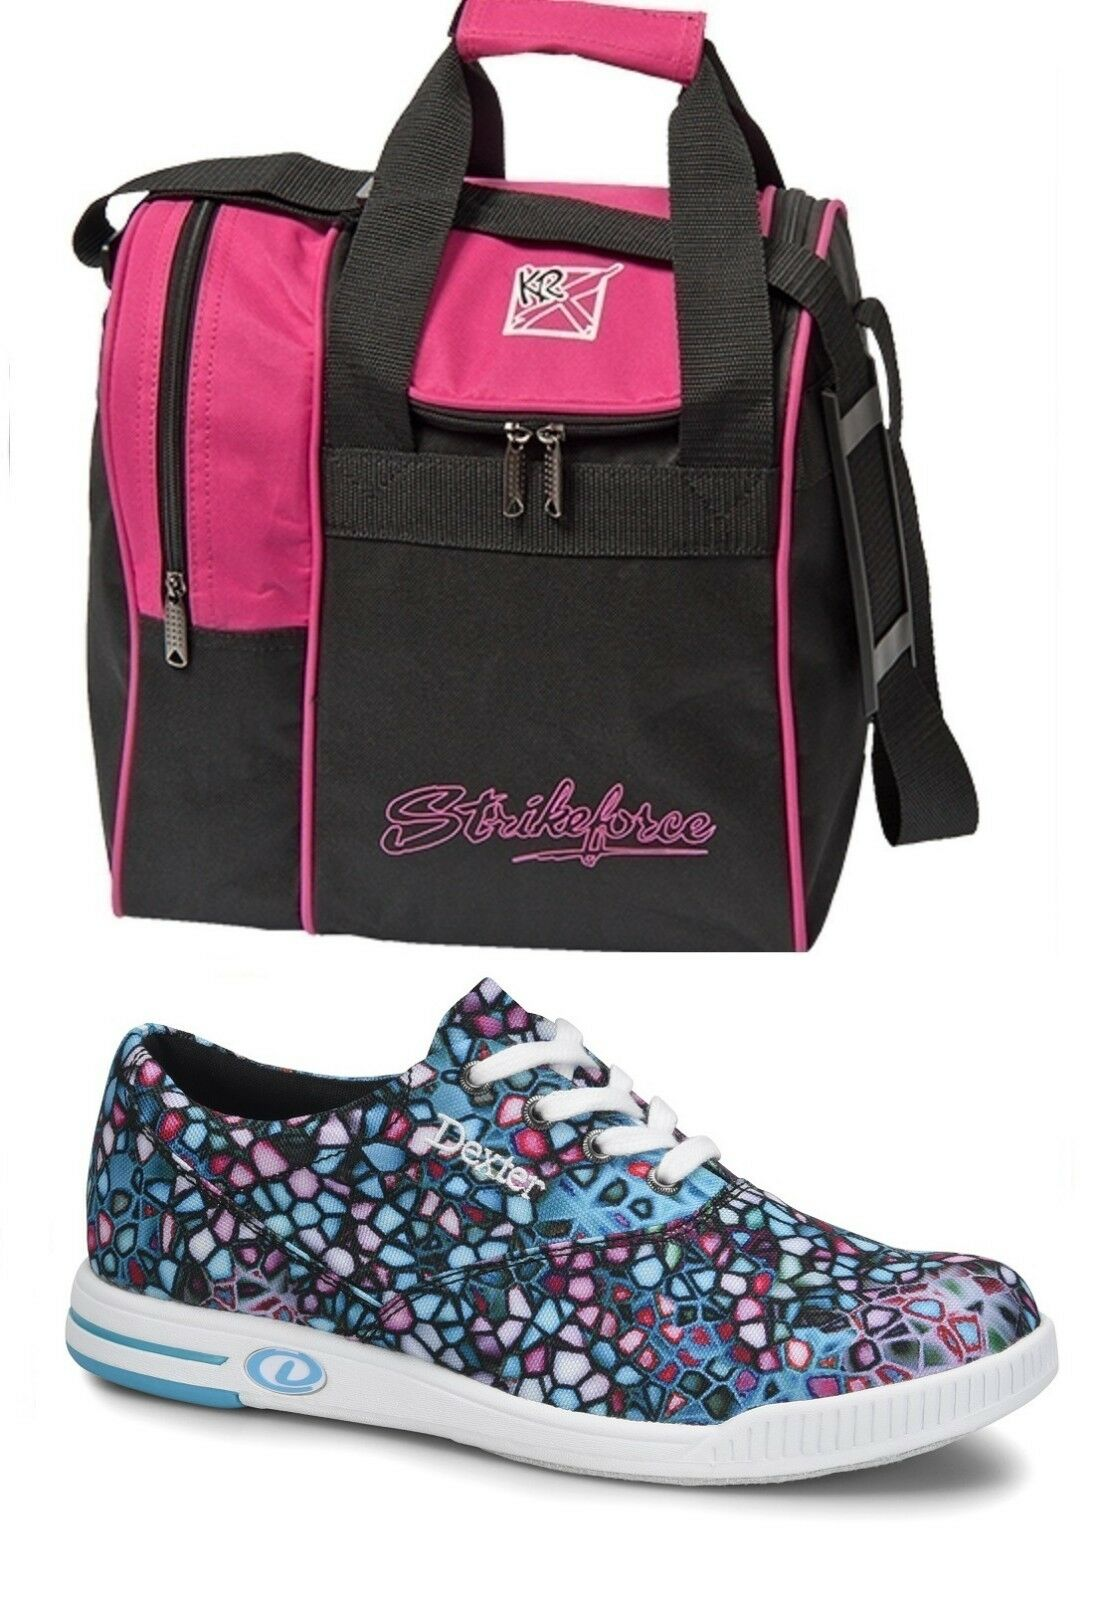 Womens Dexter KERRIE Multi-color Bowling shoes Sizes 6-11 & Pink 1 Ball Bag